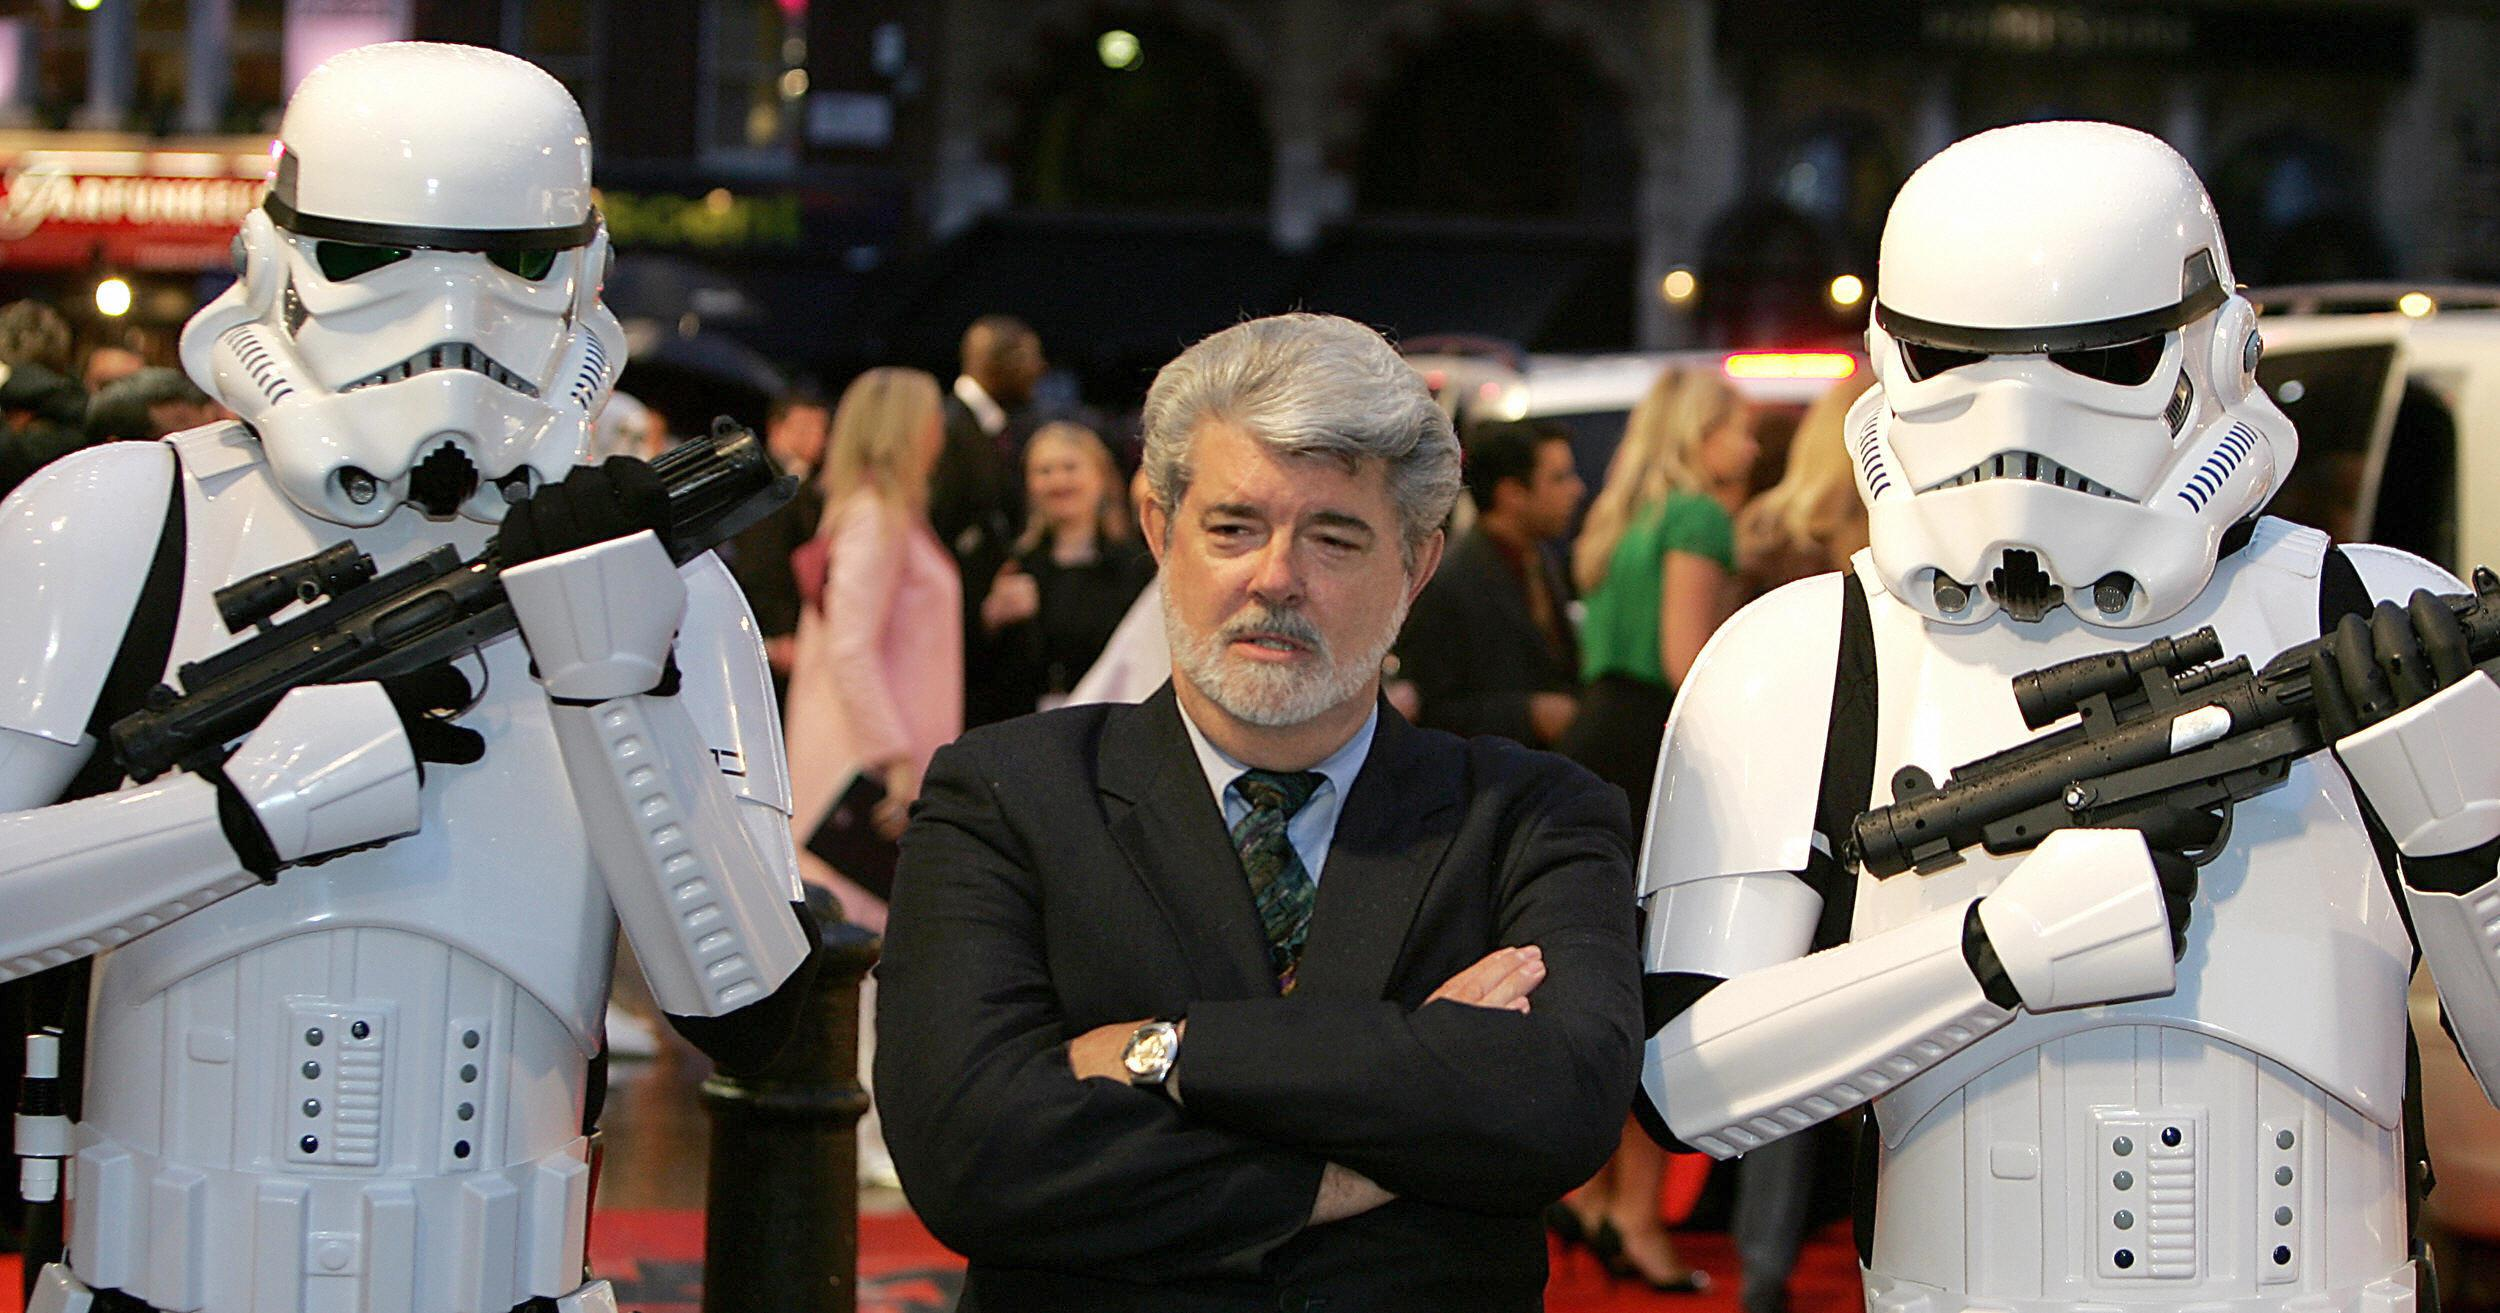 the element of the force in the film star wars a new hope by george lucas Sixteen years after completing his star wars trilogy, george lucas returned to the complex perfect world that he created with the phantom menace – the first film of the prequel trilogy.